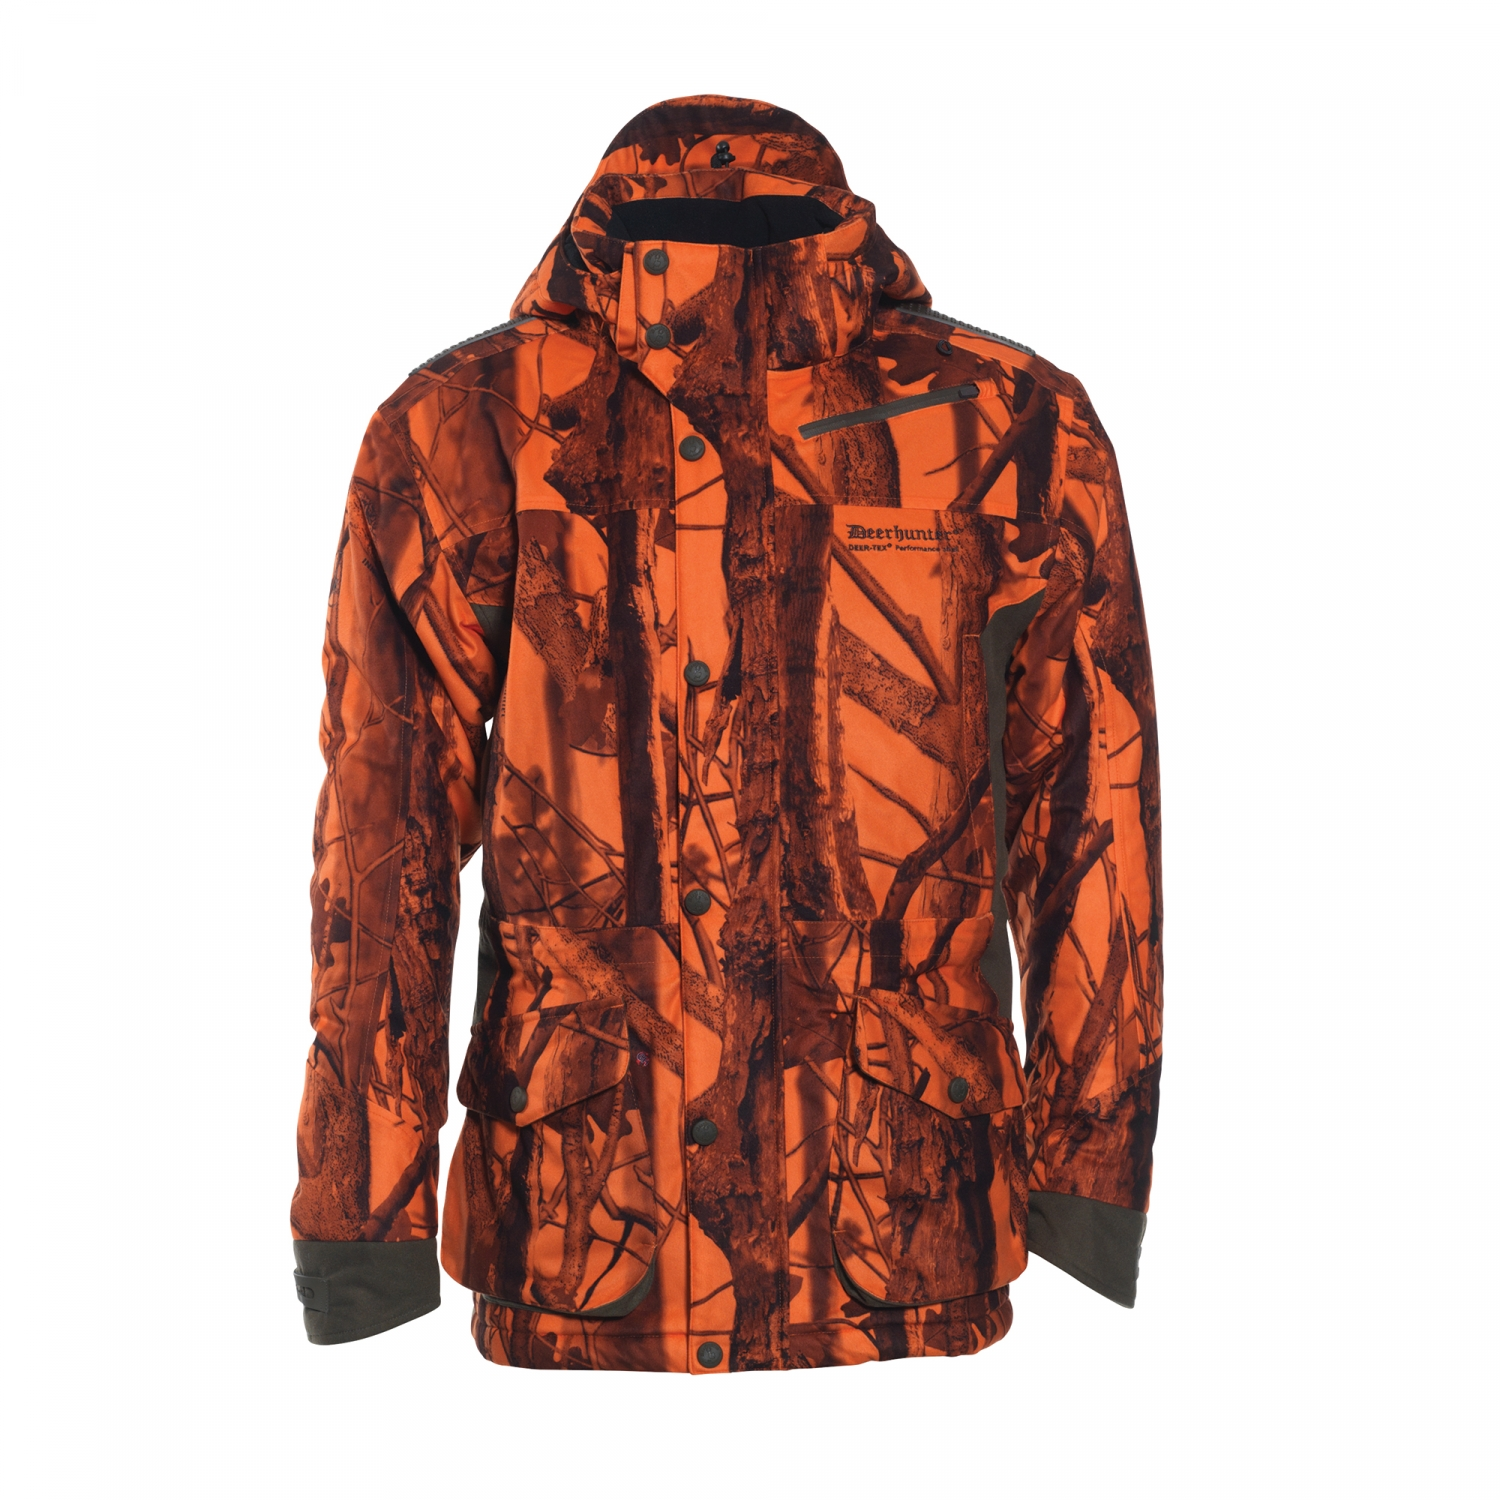 c780d29965482 Deerhunter Cumberland Arctic Jacket In DH 77 Innovation Blaze Camo | The  Hunting Edge – Hunting & Shooting Store